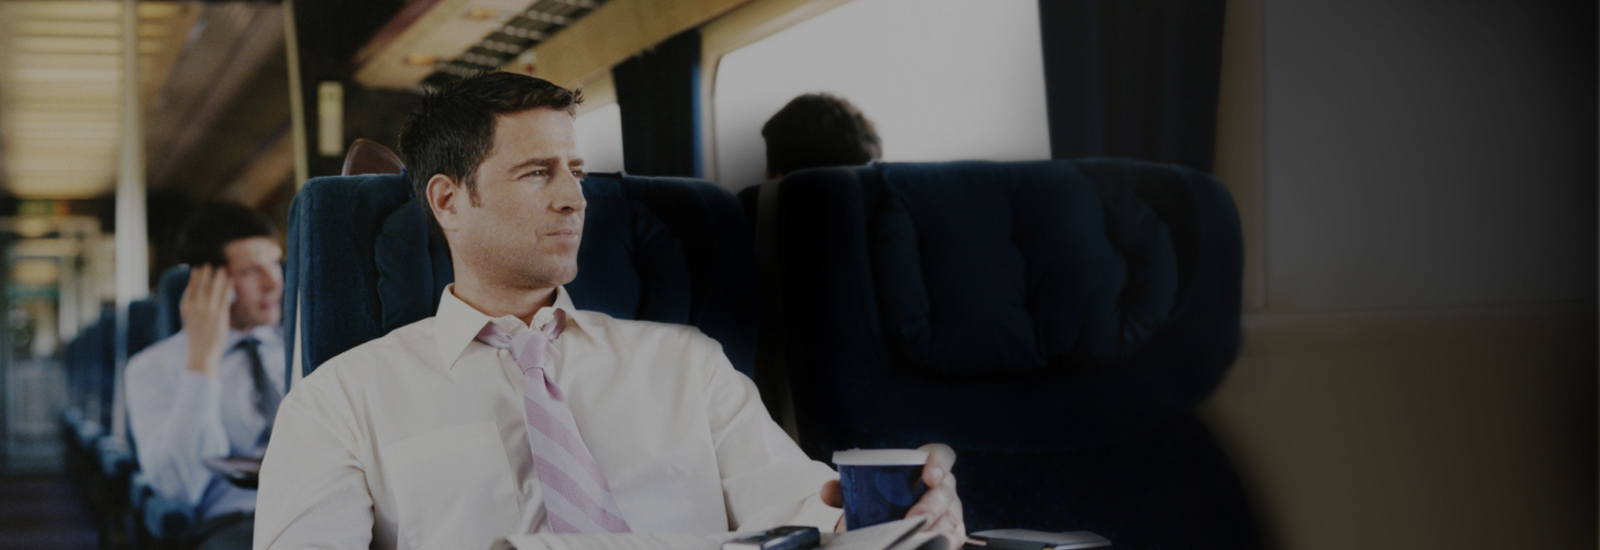 Man on train gazes out window while holding a cup of coffee